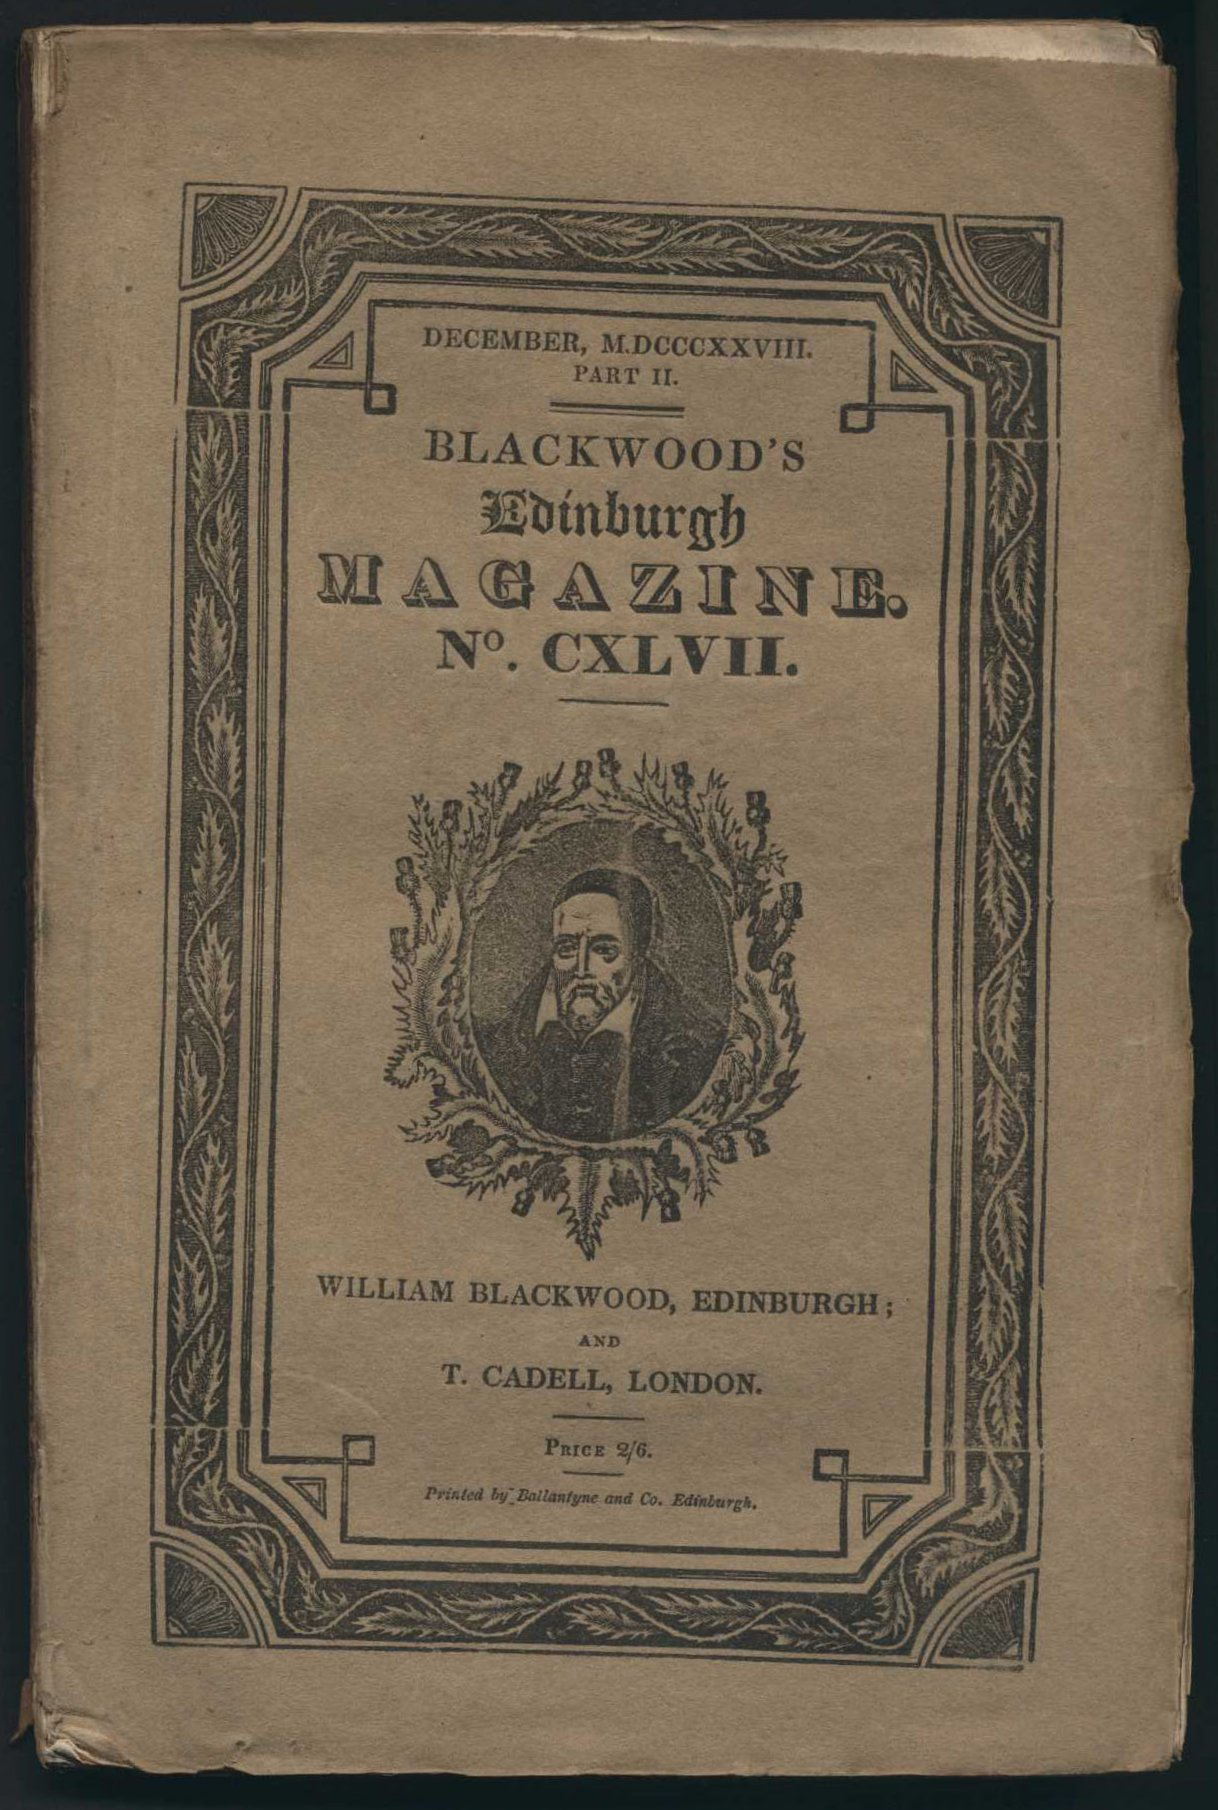 Blackwood's Edinburgh magazine. Vol. 147, no.24 (December, 1828).